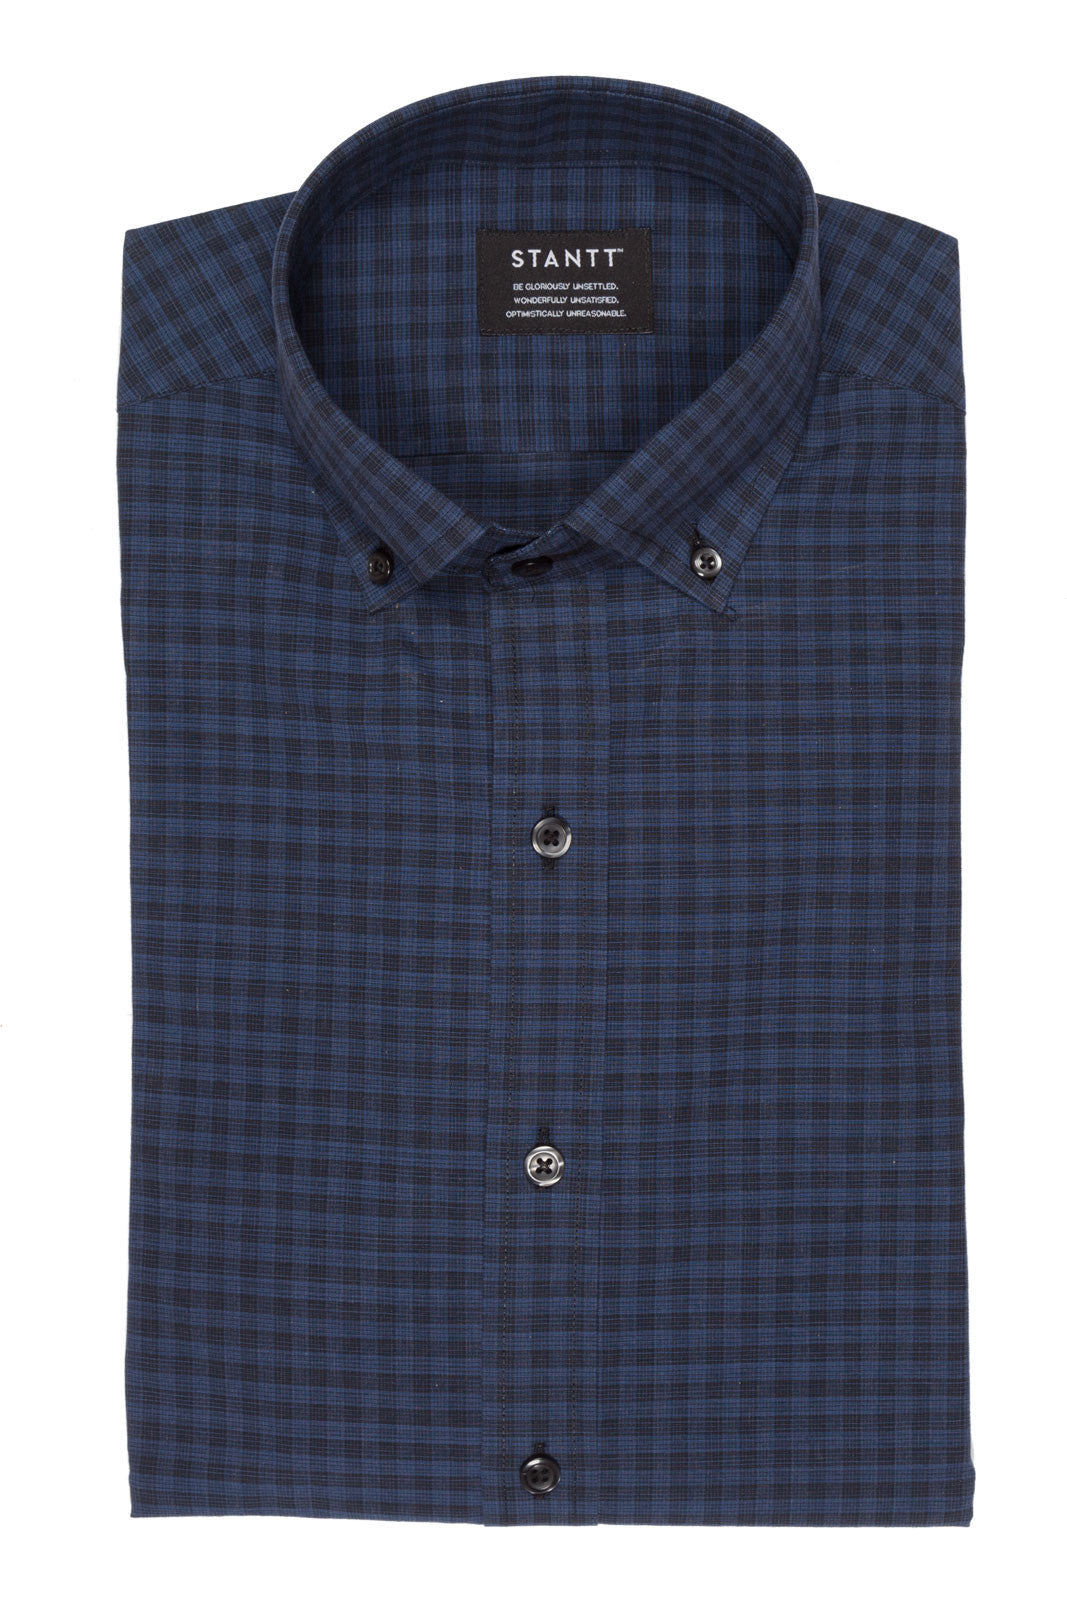 Midnight Blue Graph Check: Cutaway Collar, French Cuff